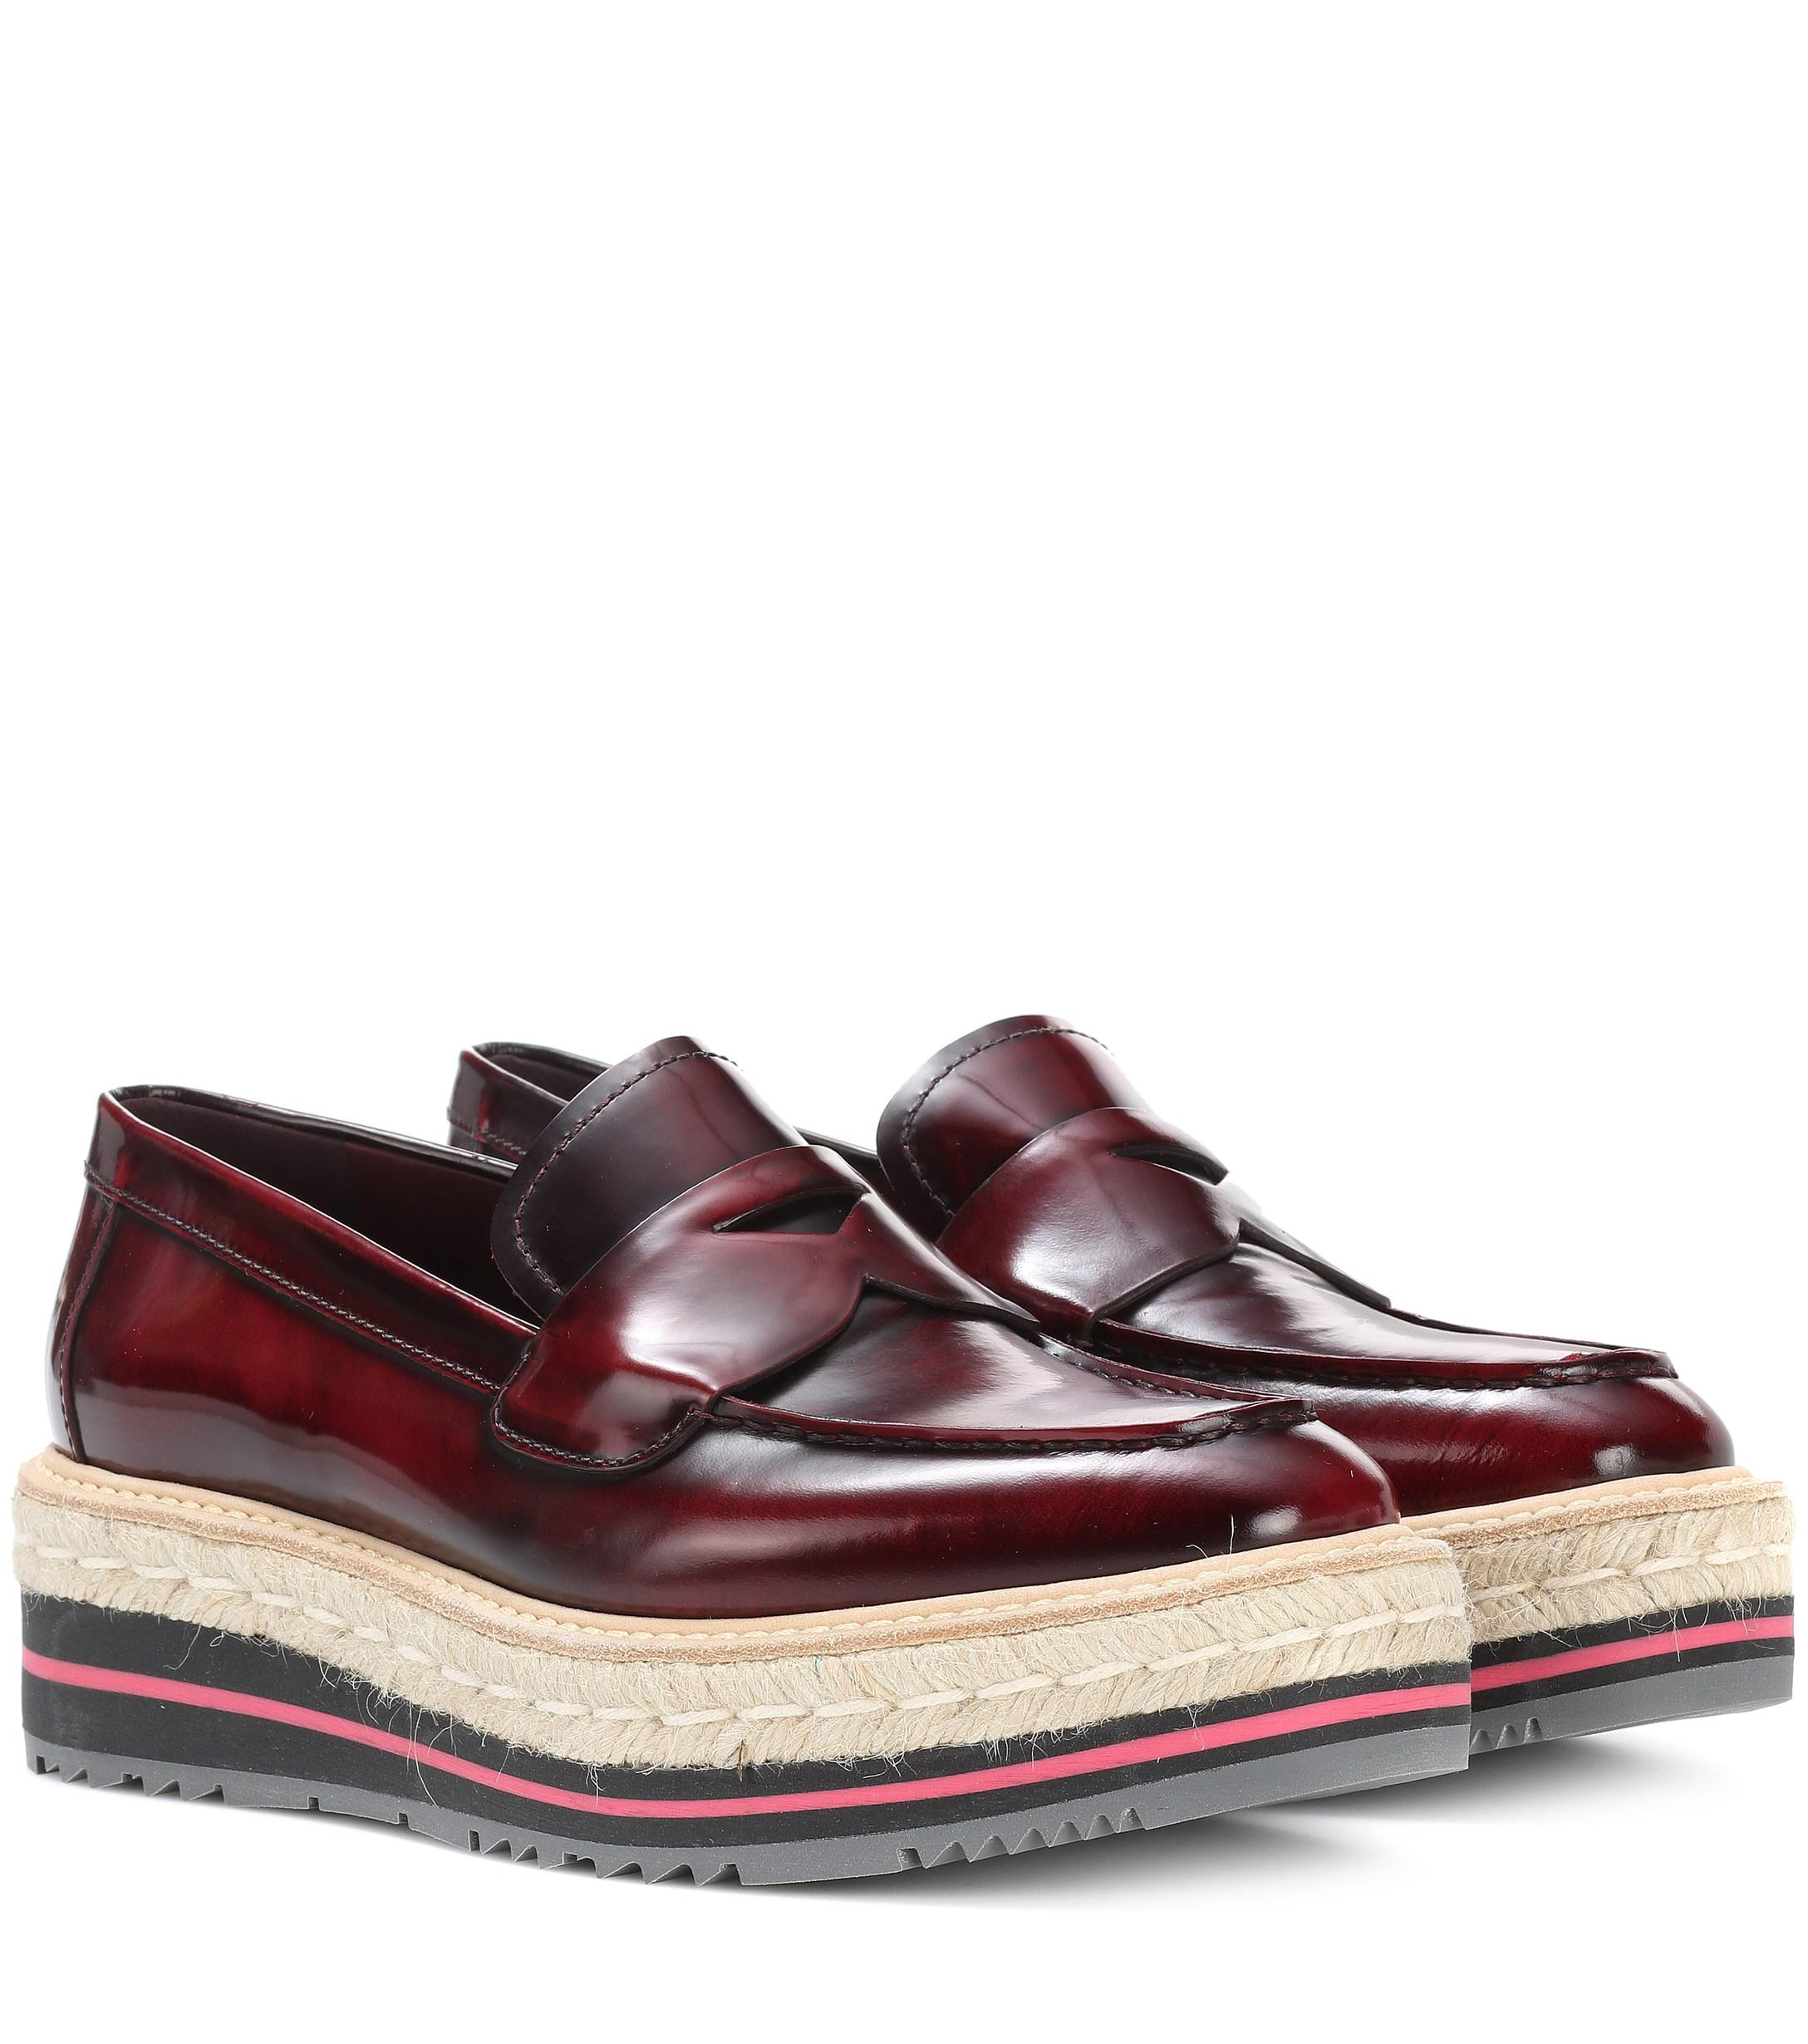 f9f136503 Prada. Women's Leather Platform Loafers